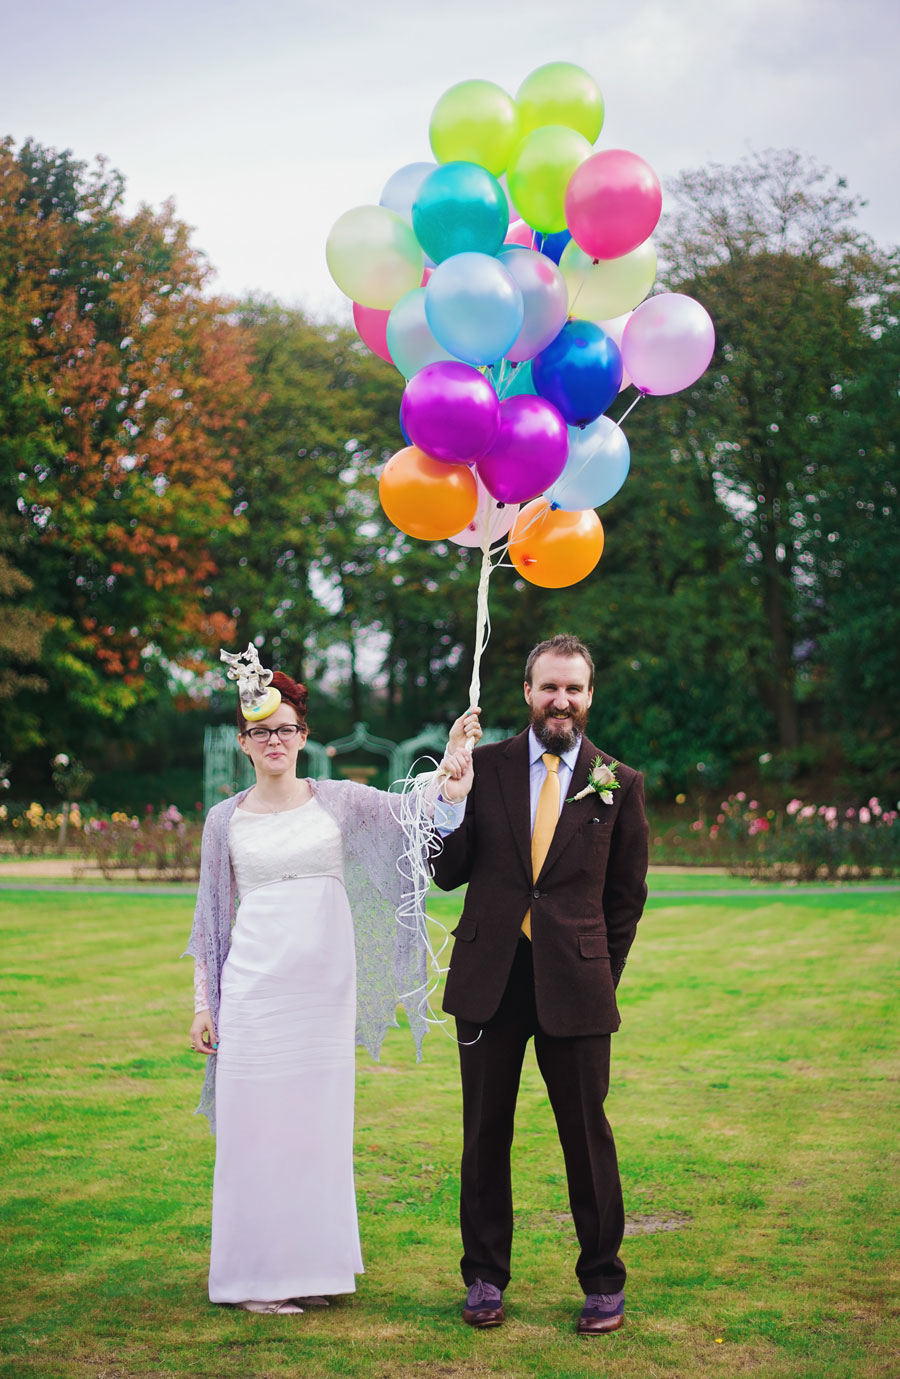 colourful vintage themed wedding in Lancashire - wedding photography